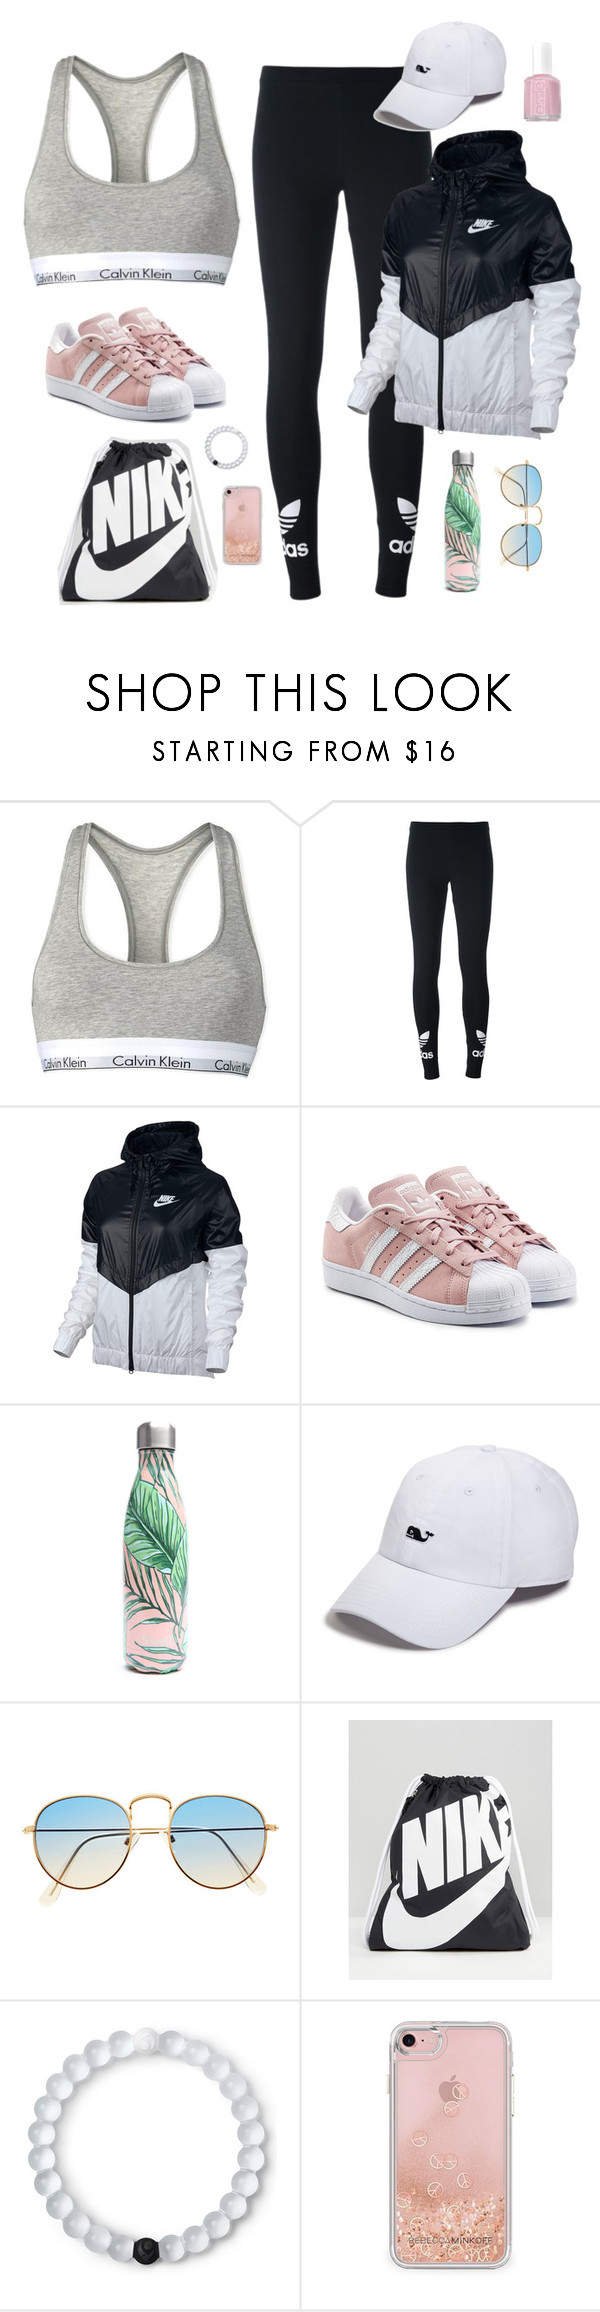 """Wish list"" by jjjunebug2 ❤ liked on Polyvore featuring Calvin Klein, adidas Originals, NIKE, S'well, Vineyard Vines, Lokai, Rebecca Minkoff and Essie"